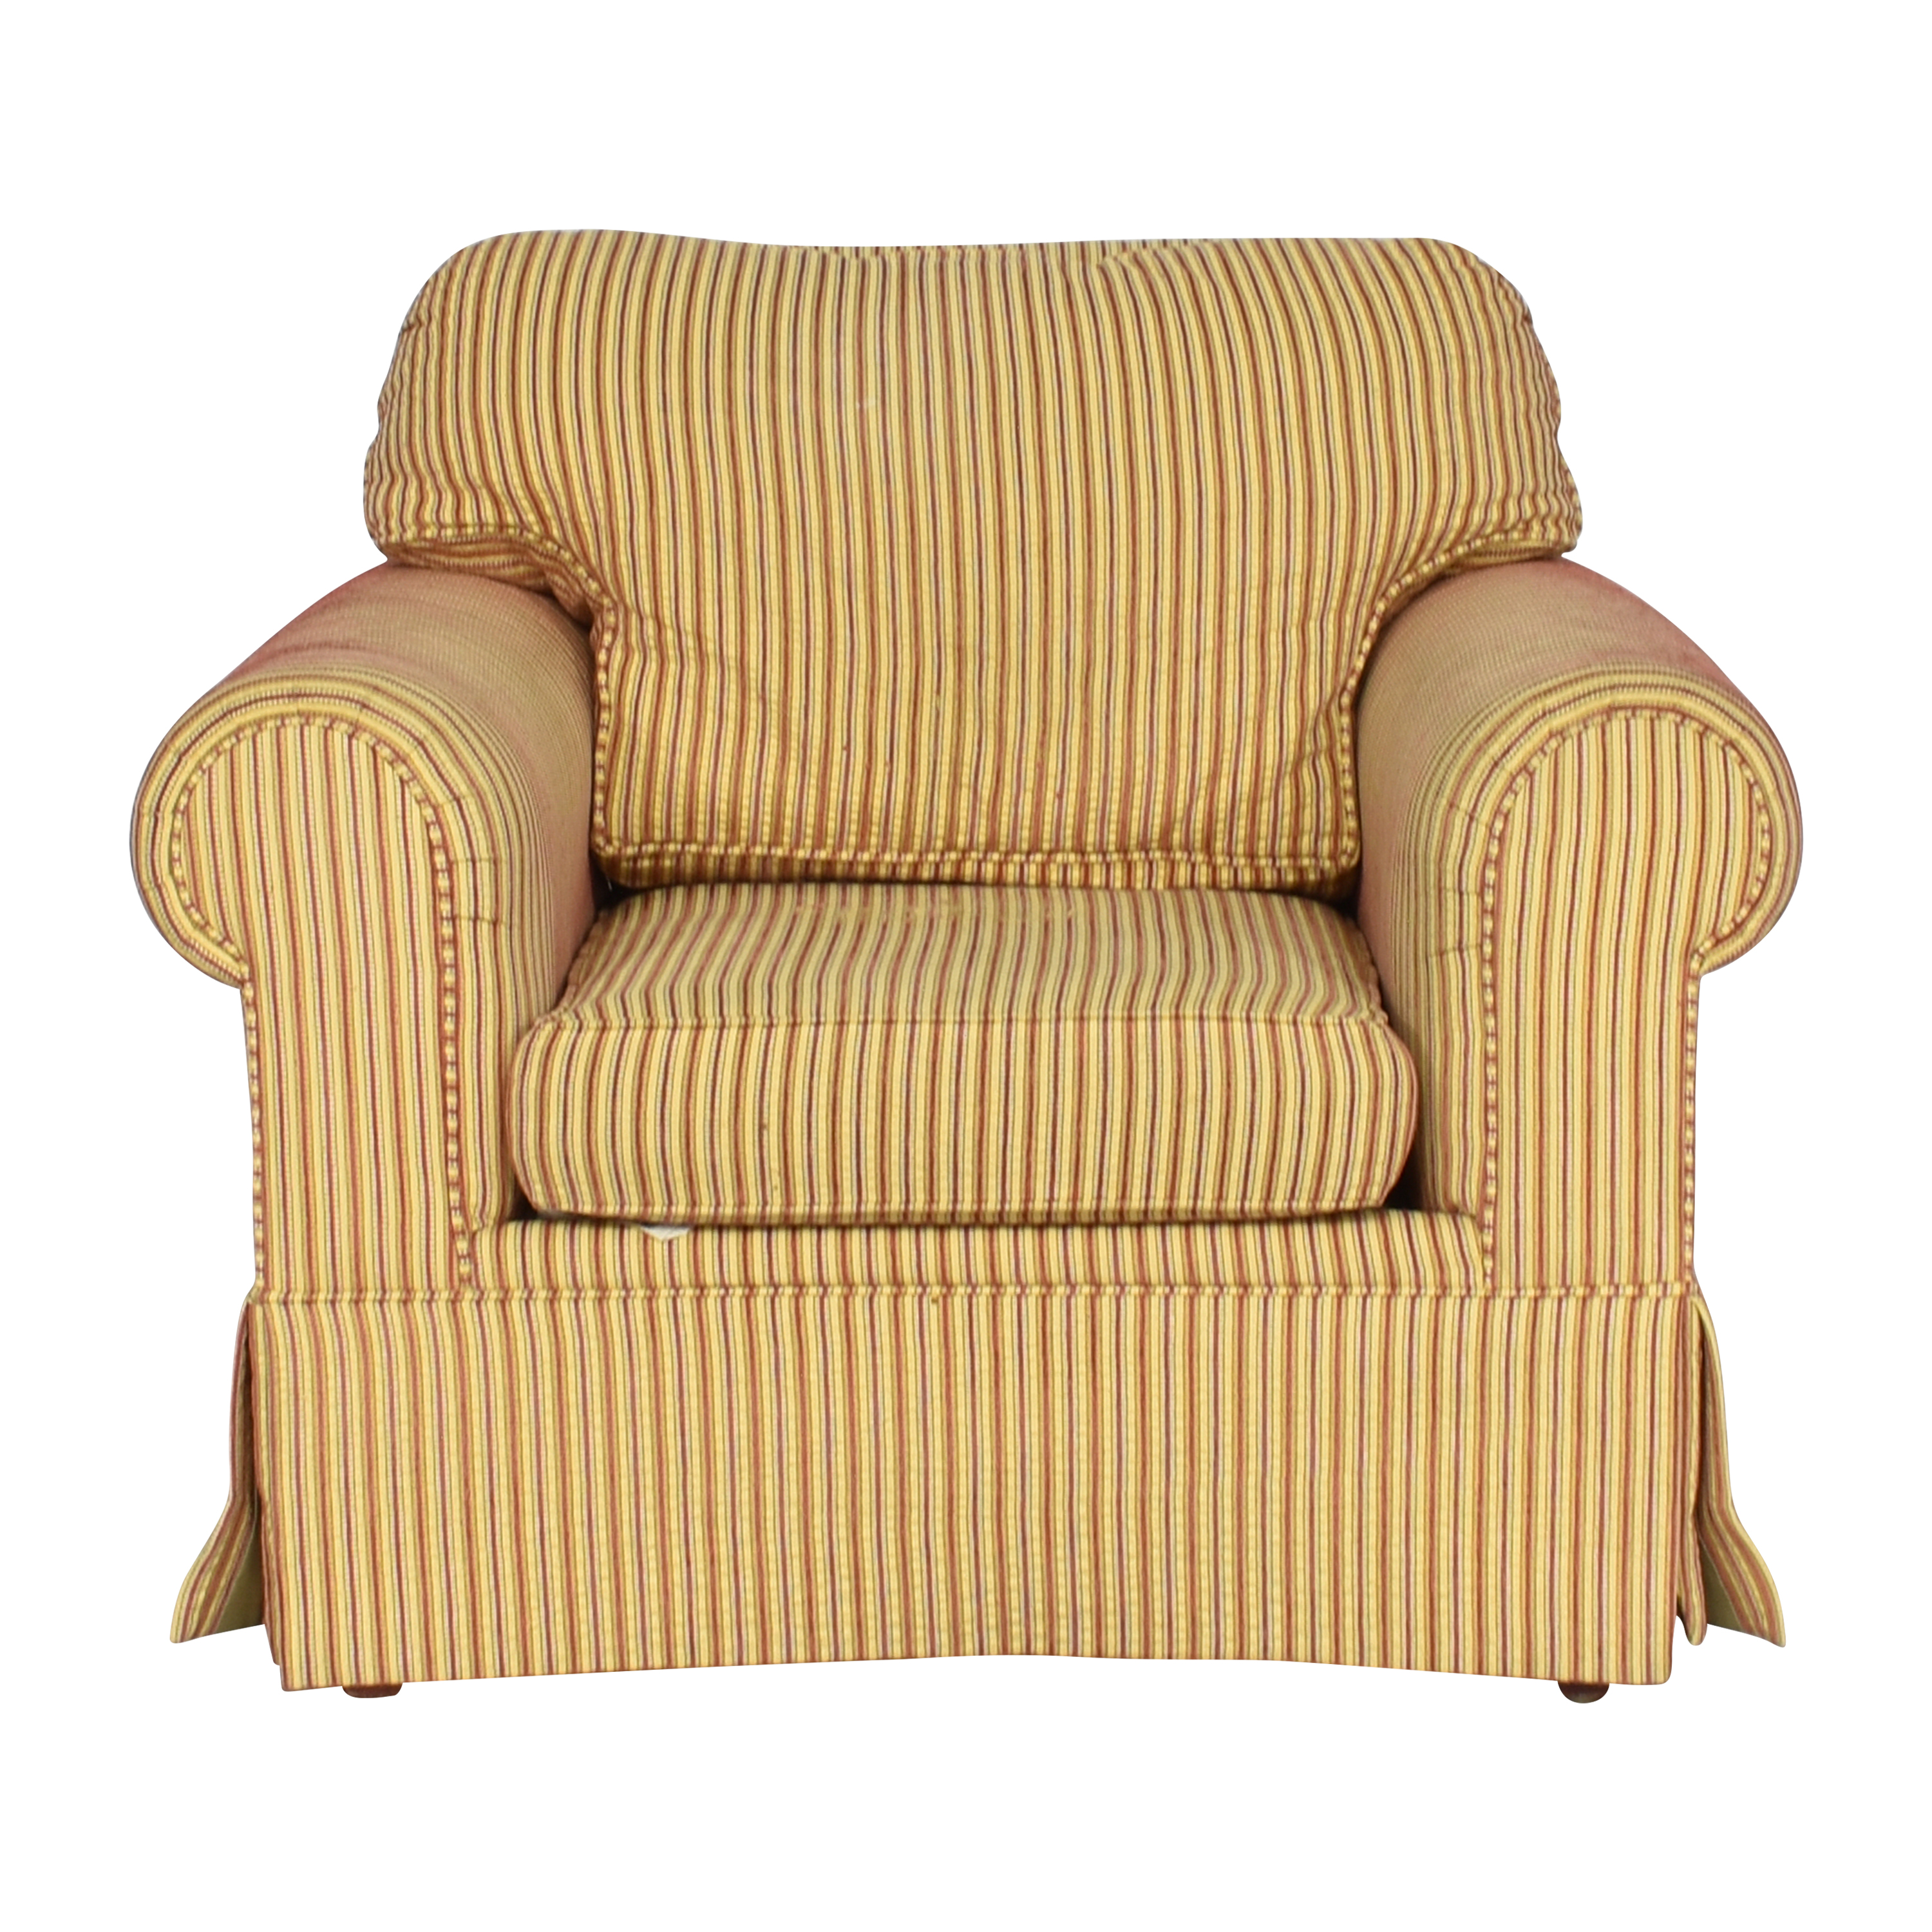 Southwood Southwood Roll Arm Lounge Chair